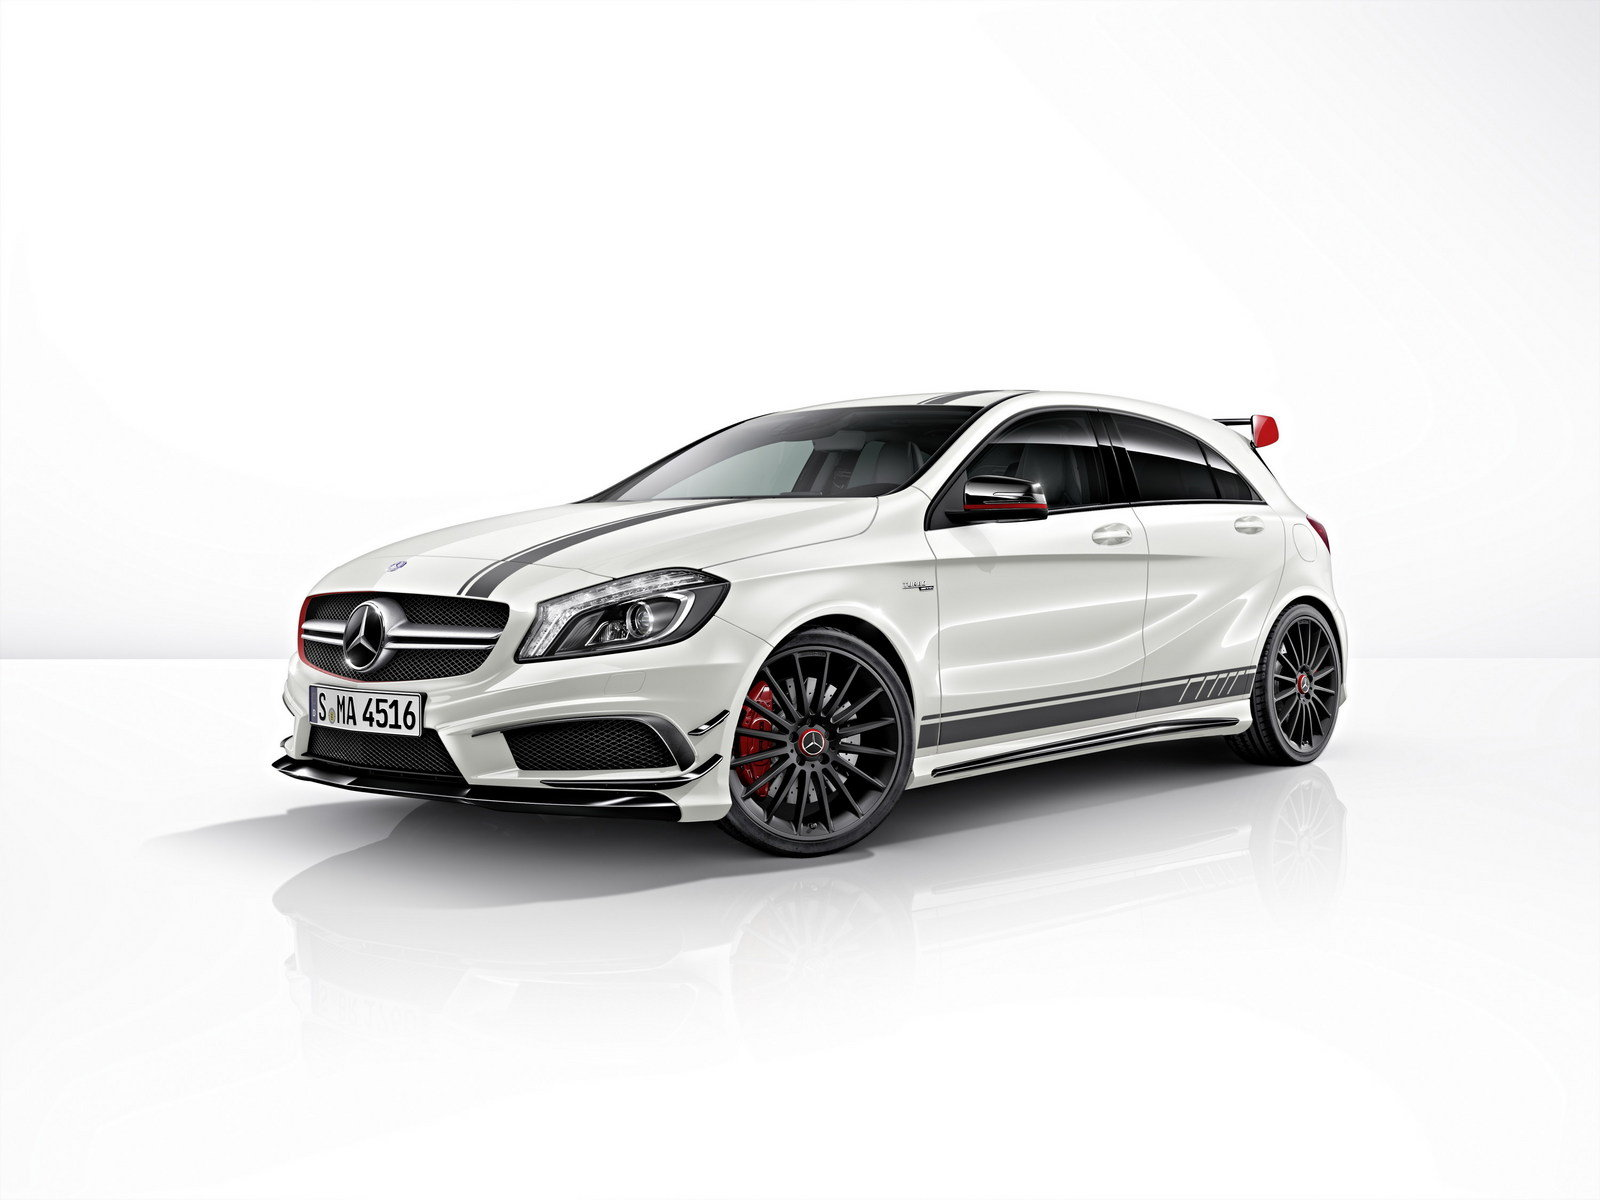 2014 mercedes a45 amg edition 1 review top speed. Black Bedroom Furniture Sets. Home Design Ideas